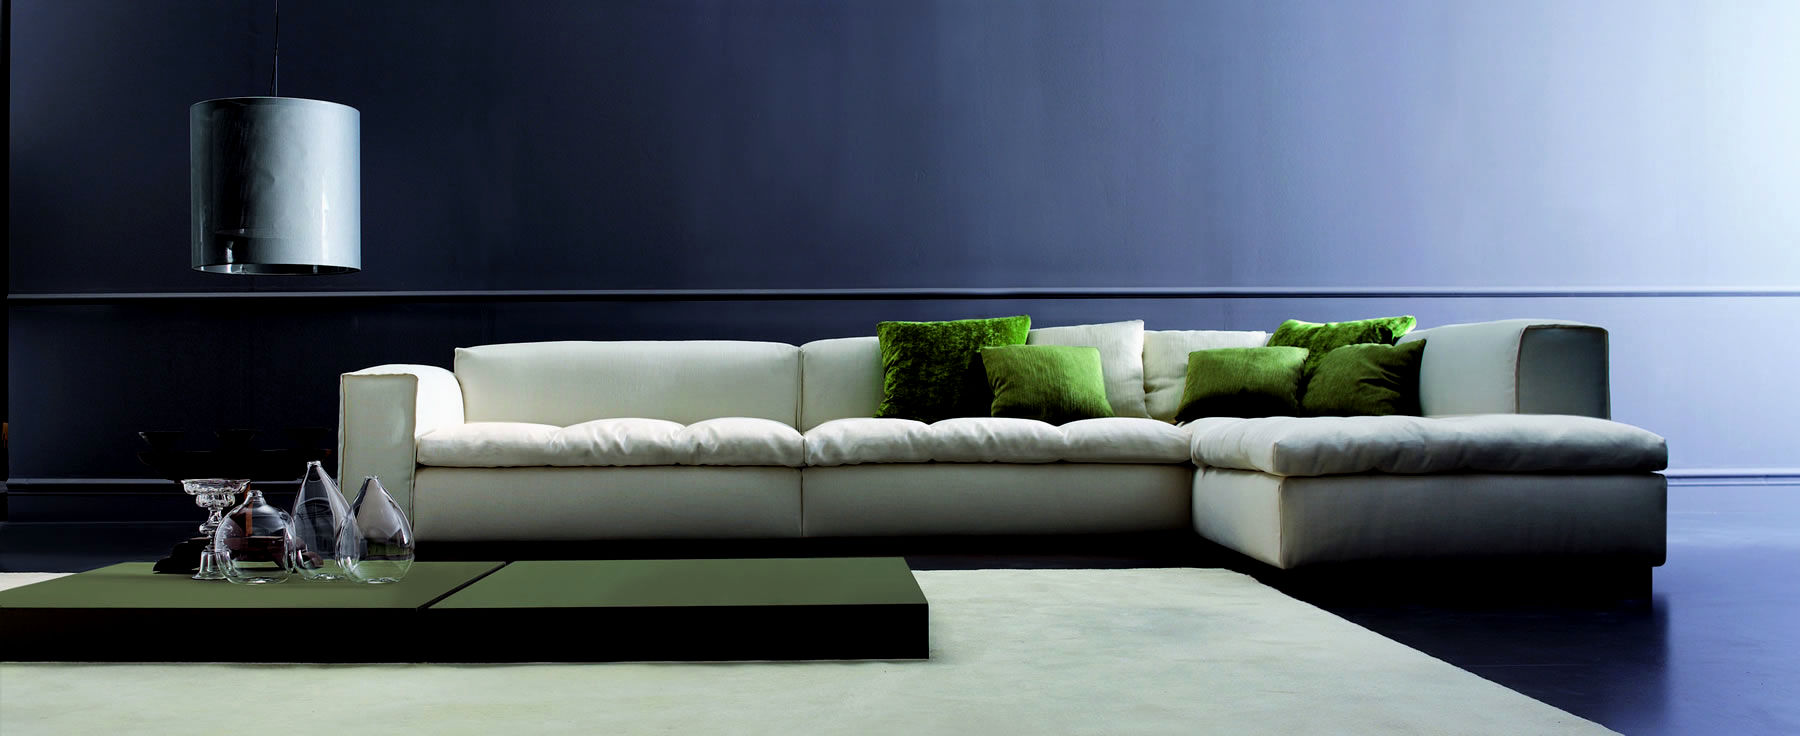 incredible modern white leather sofa image-Best Modern White Leather sofa Décor